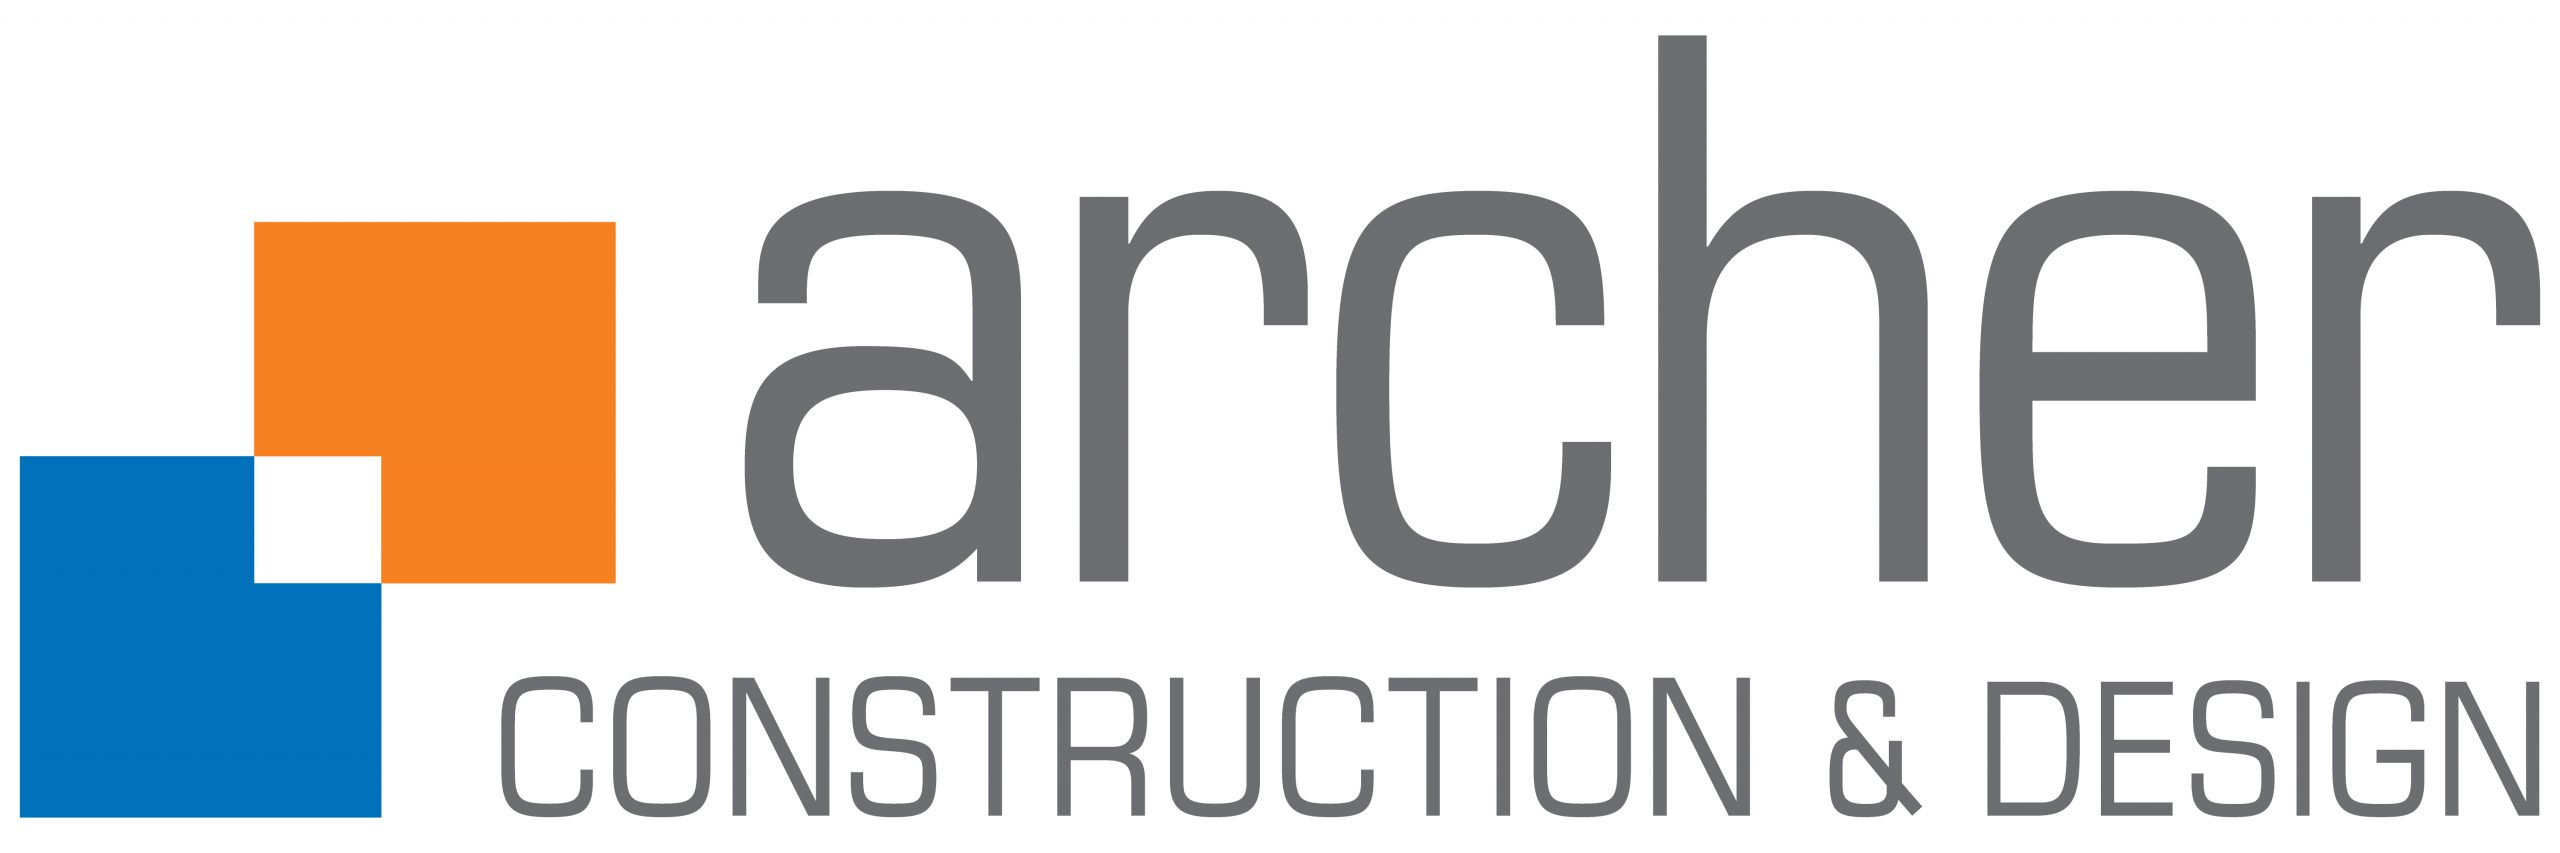 Archer Construction & Design